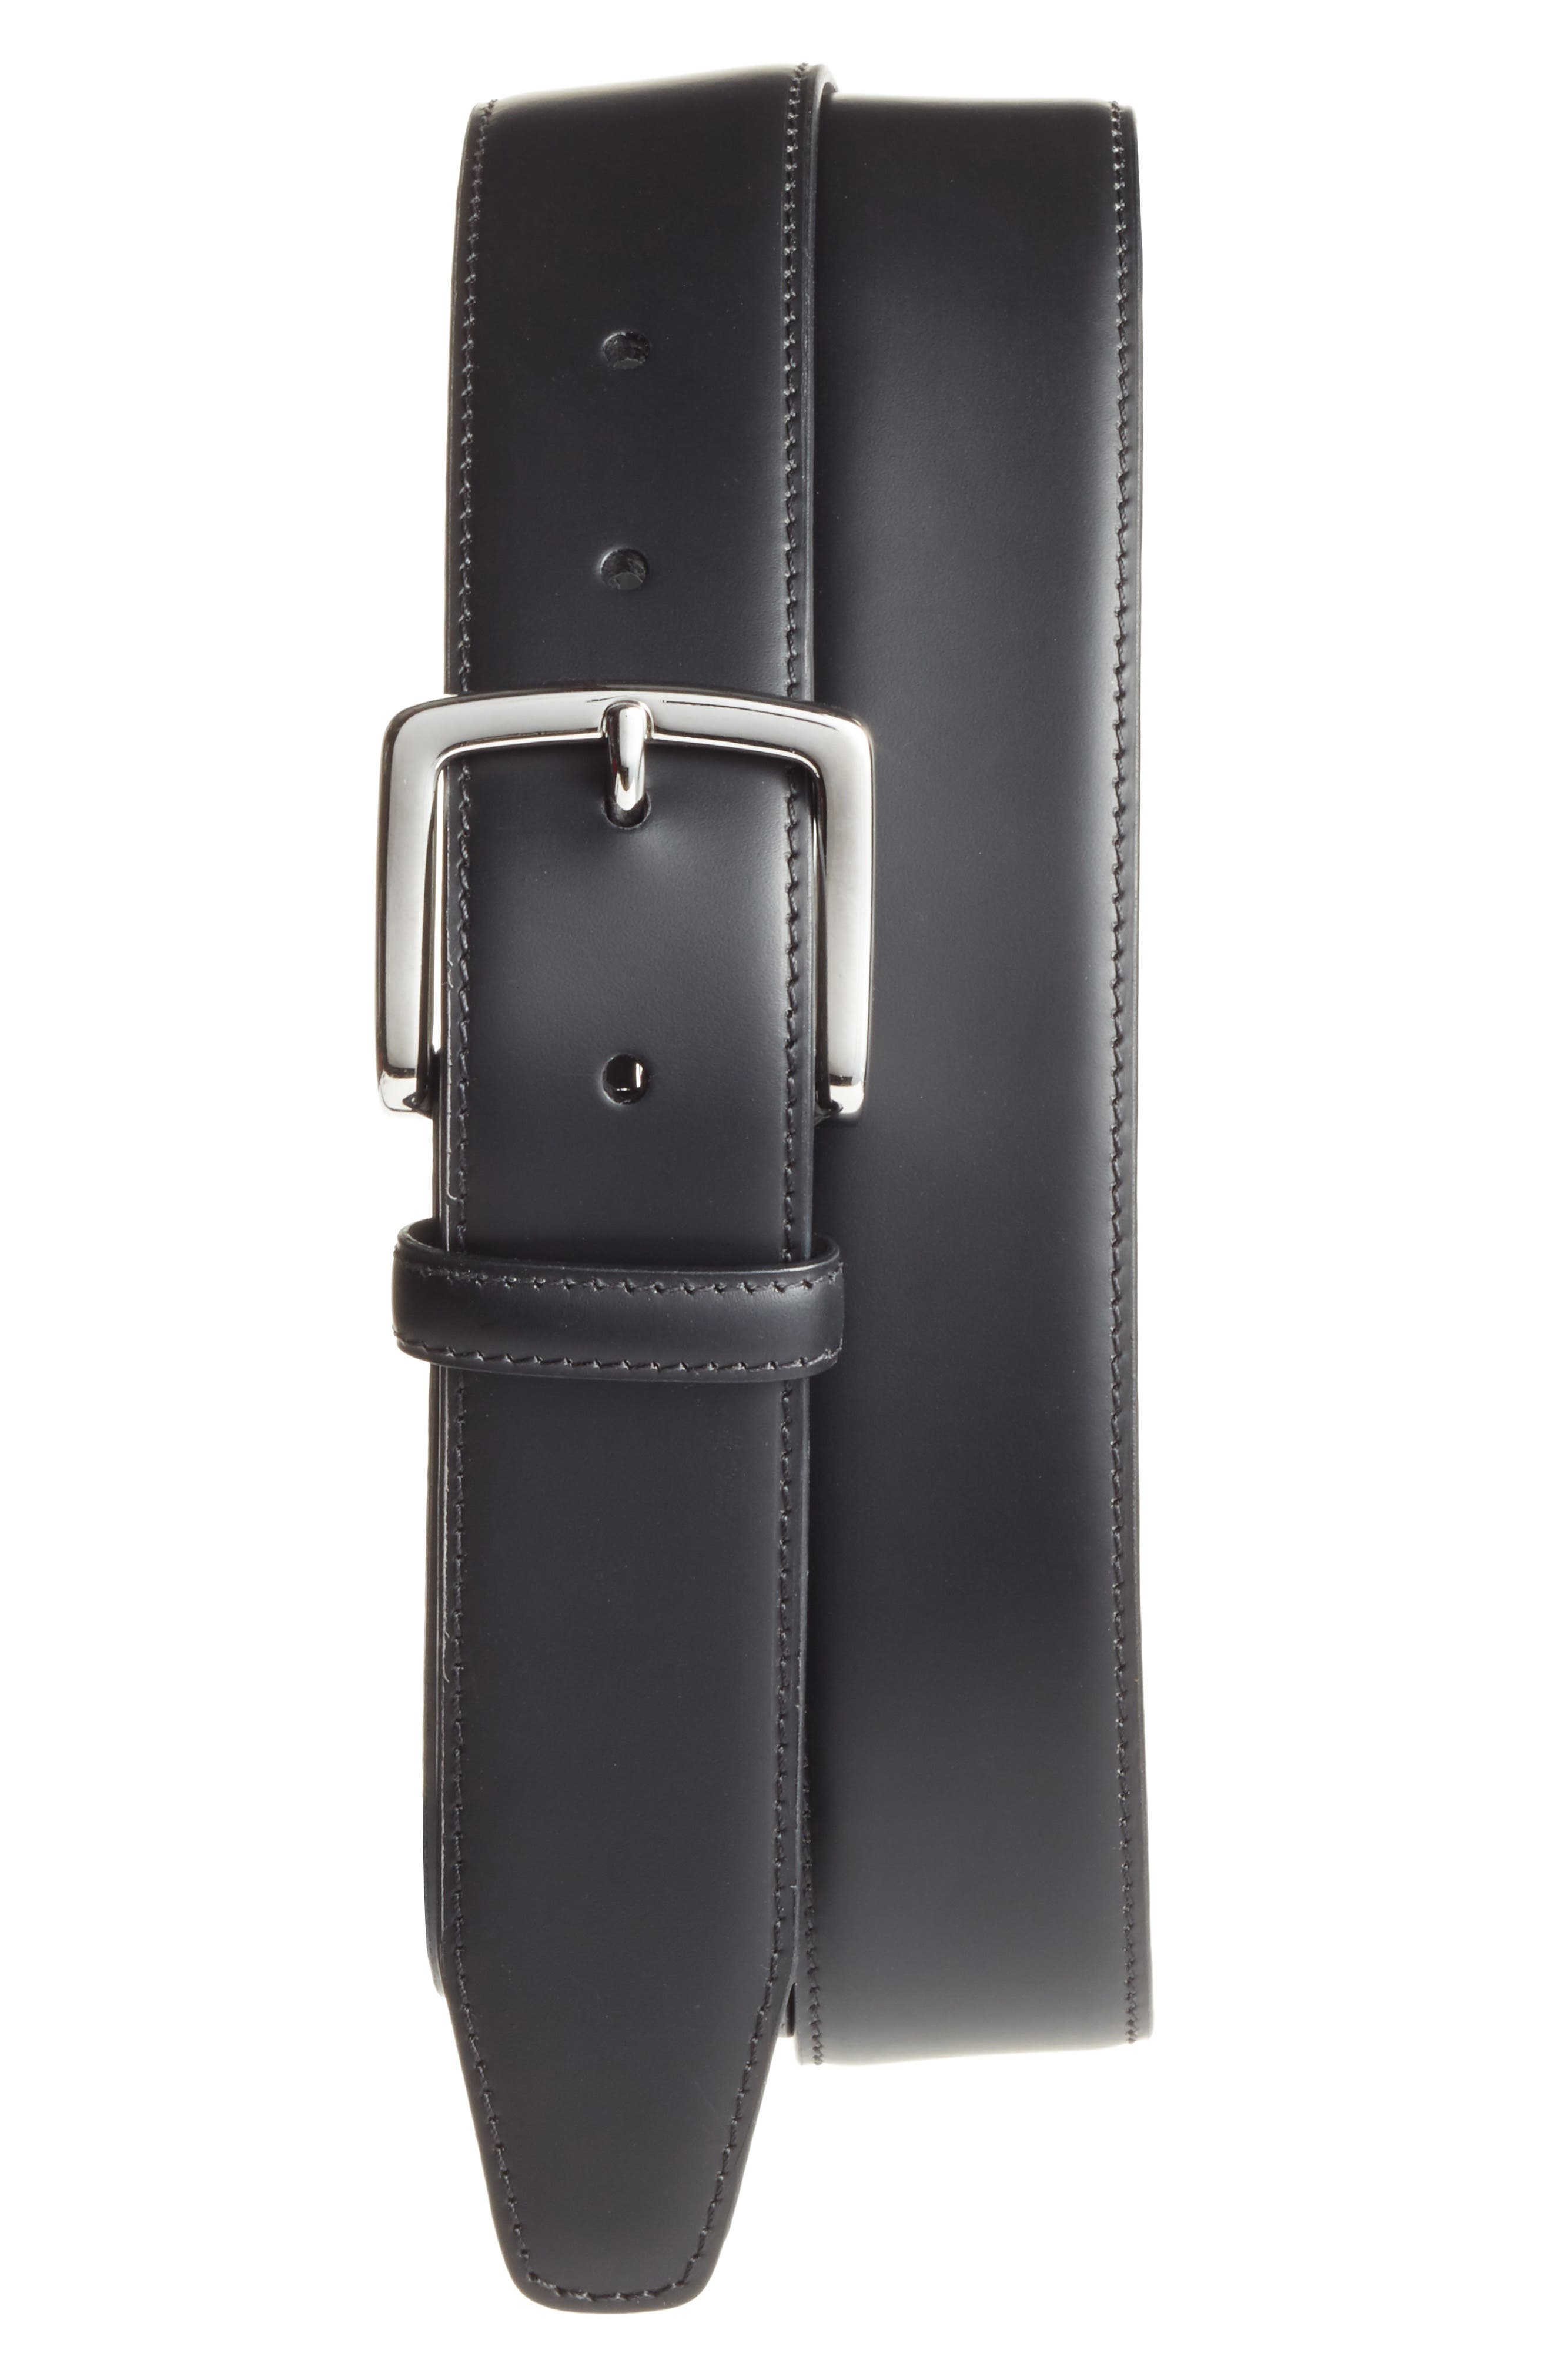 Monte Rosso Nero Leather Dress Belt